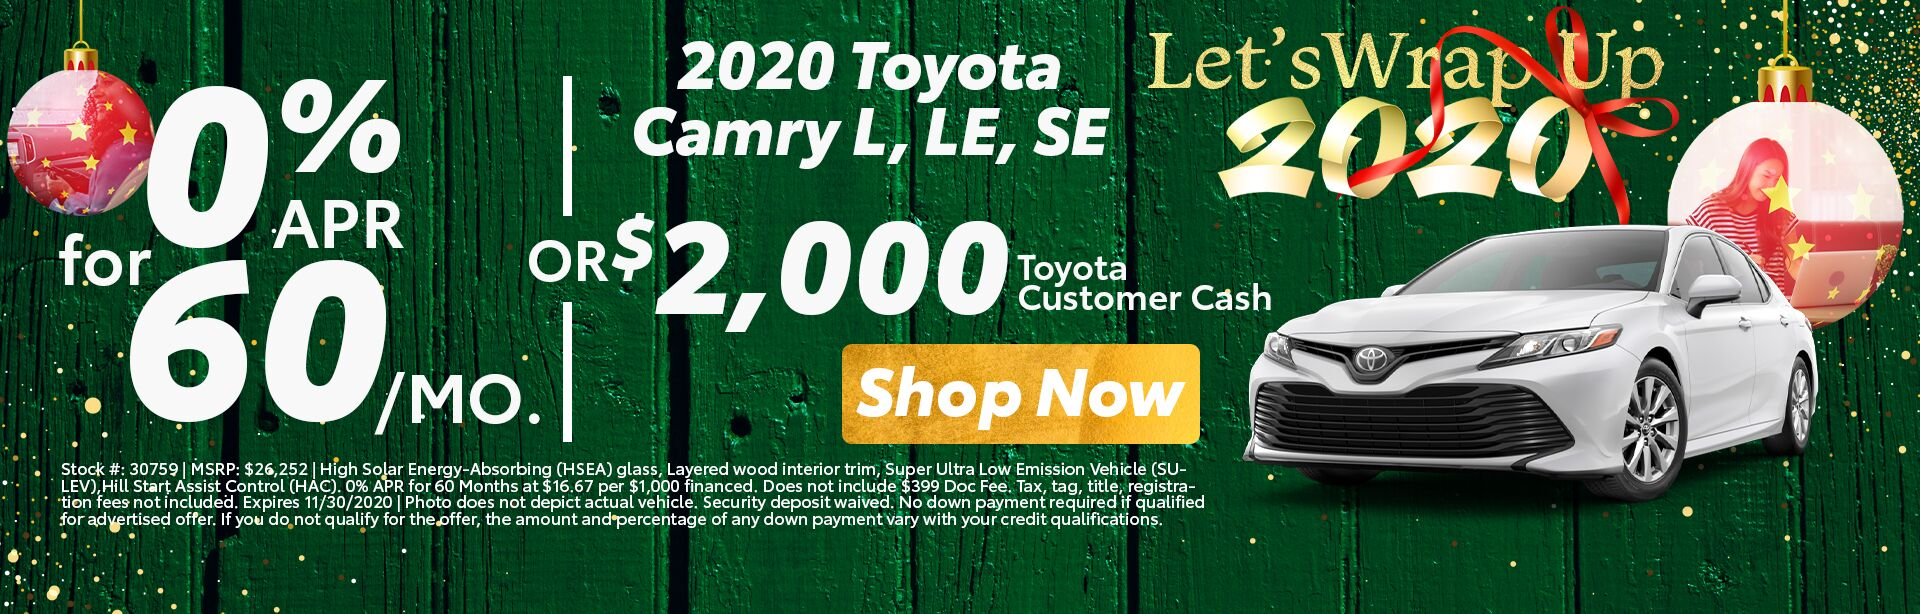 2020 Camry deals near me, Grand Junction CO